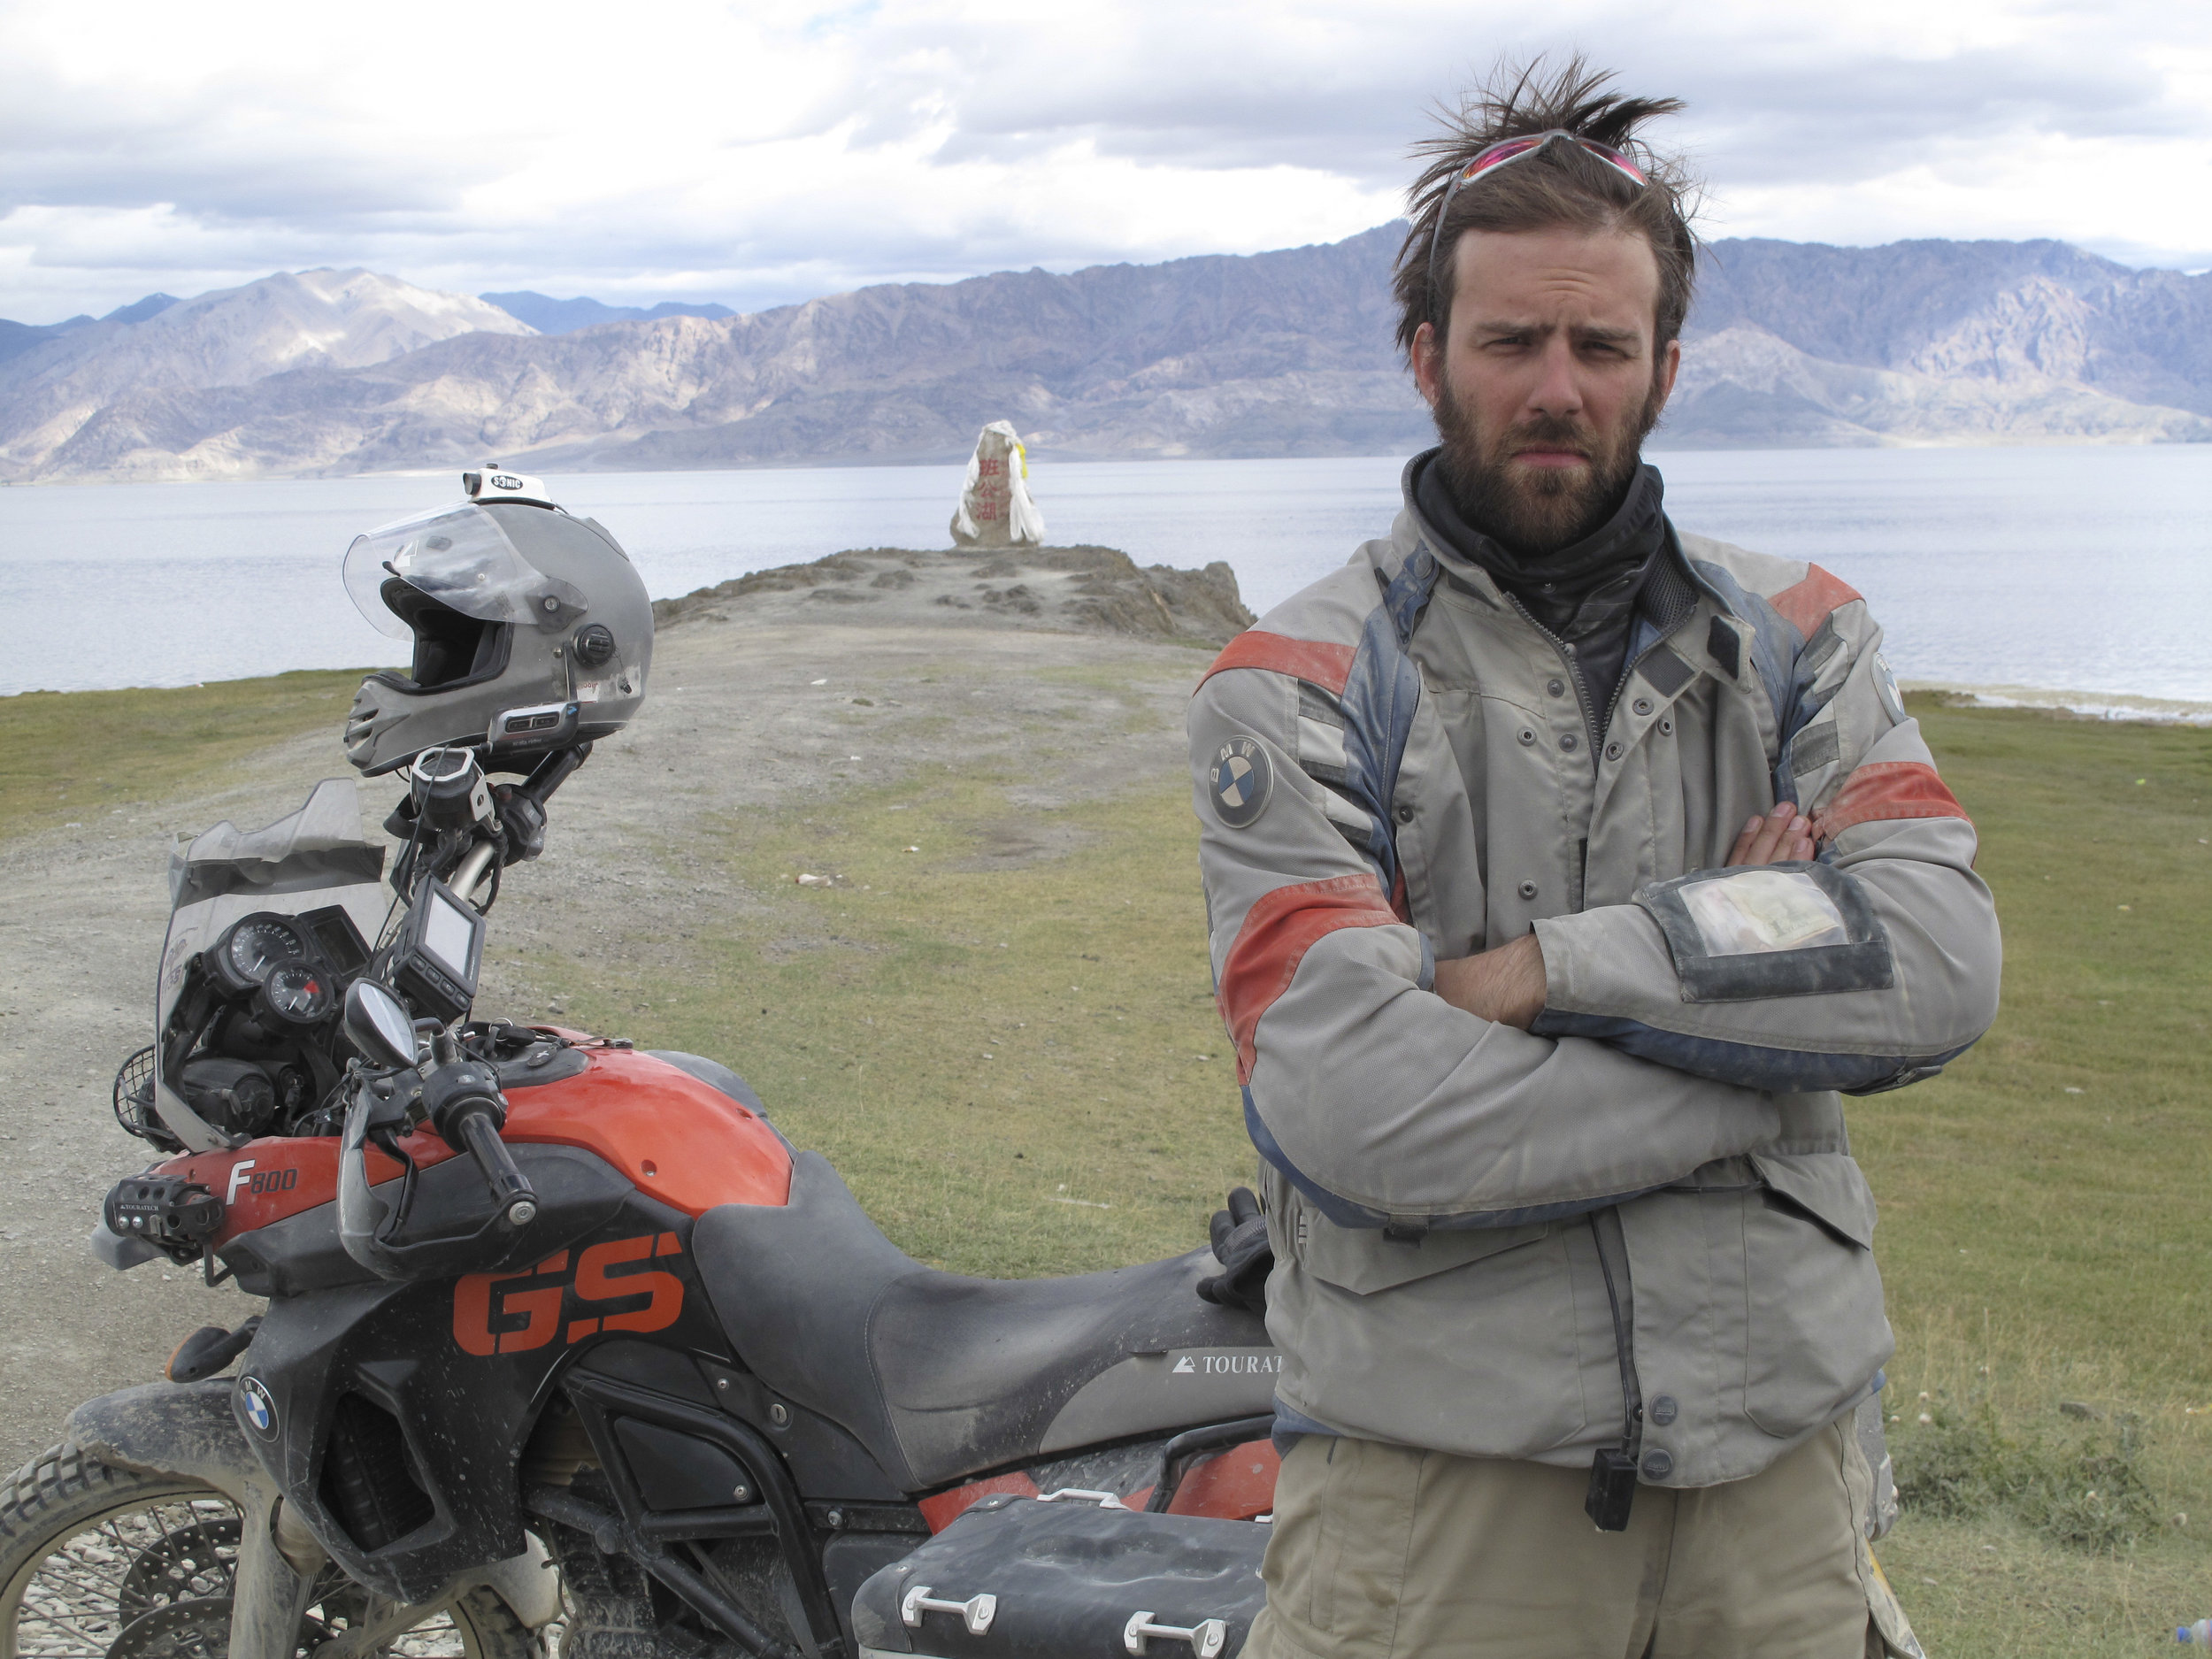 TIBET MOTORCYCLE TOUR || Lhasa to Mt. Everest Base Camp   -  DATES  - September 7th 2019 to September 16th 2019  -  SUMMARY  - Join Ryan Pyle for his annual motorcycle tour through Tibet. Taking place every September, Ryan will lead a group of friends from Lhasa to Mt. Everest Base Camp by motorcycle. Tibet is arguably one of the most mysterious and beautiful places in the world. Our exclusive motorcycle tour offers you the opportunity to ride through stunning Tibetan landscapes while enjoying views of iconic landmarks such as Lakes Yamdrok and Namtso as well as Mr. Everest. This journey is further enhanced by visits to some of Tibet's most revered Buddhist locations including Jokhang Temple and Sera Monastery in Lhasa. Your Tibetan adventure is sure to be a remarkable experience that will stay with you for years to come.